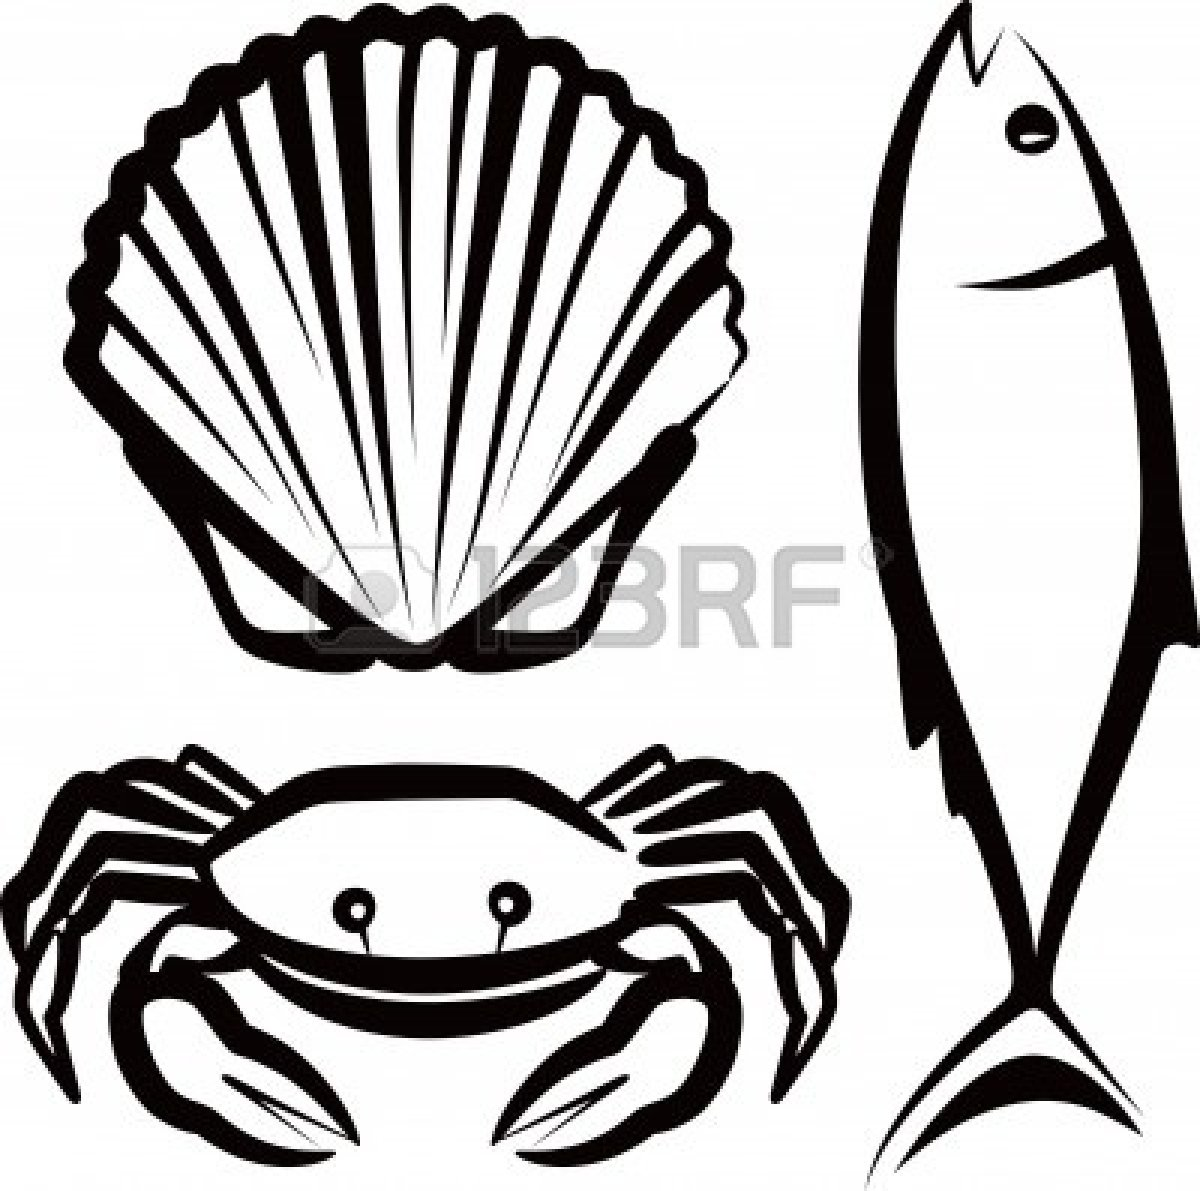 Seafood free clipart vector library stock Seafood Clipart Free | Clipart Panda - Free Clipart Images vector library stock